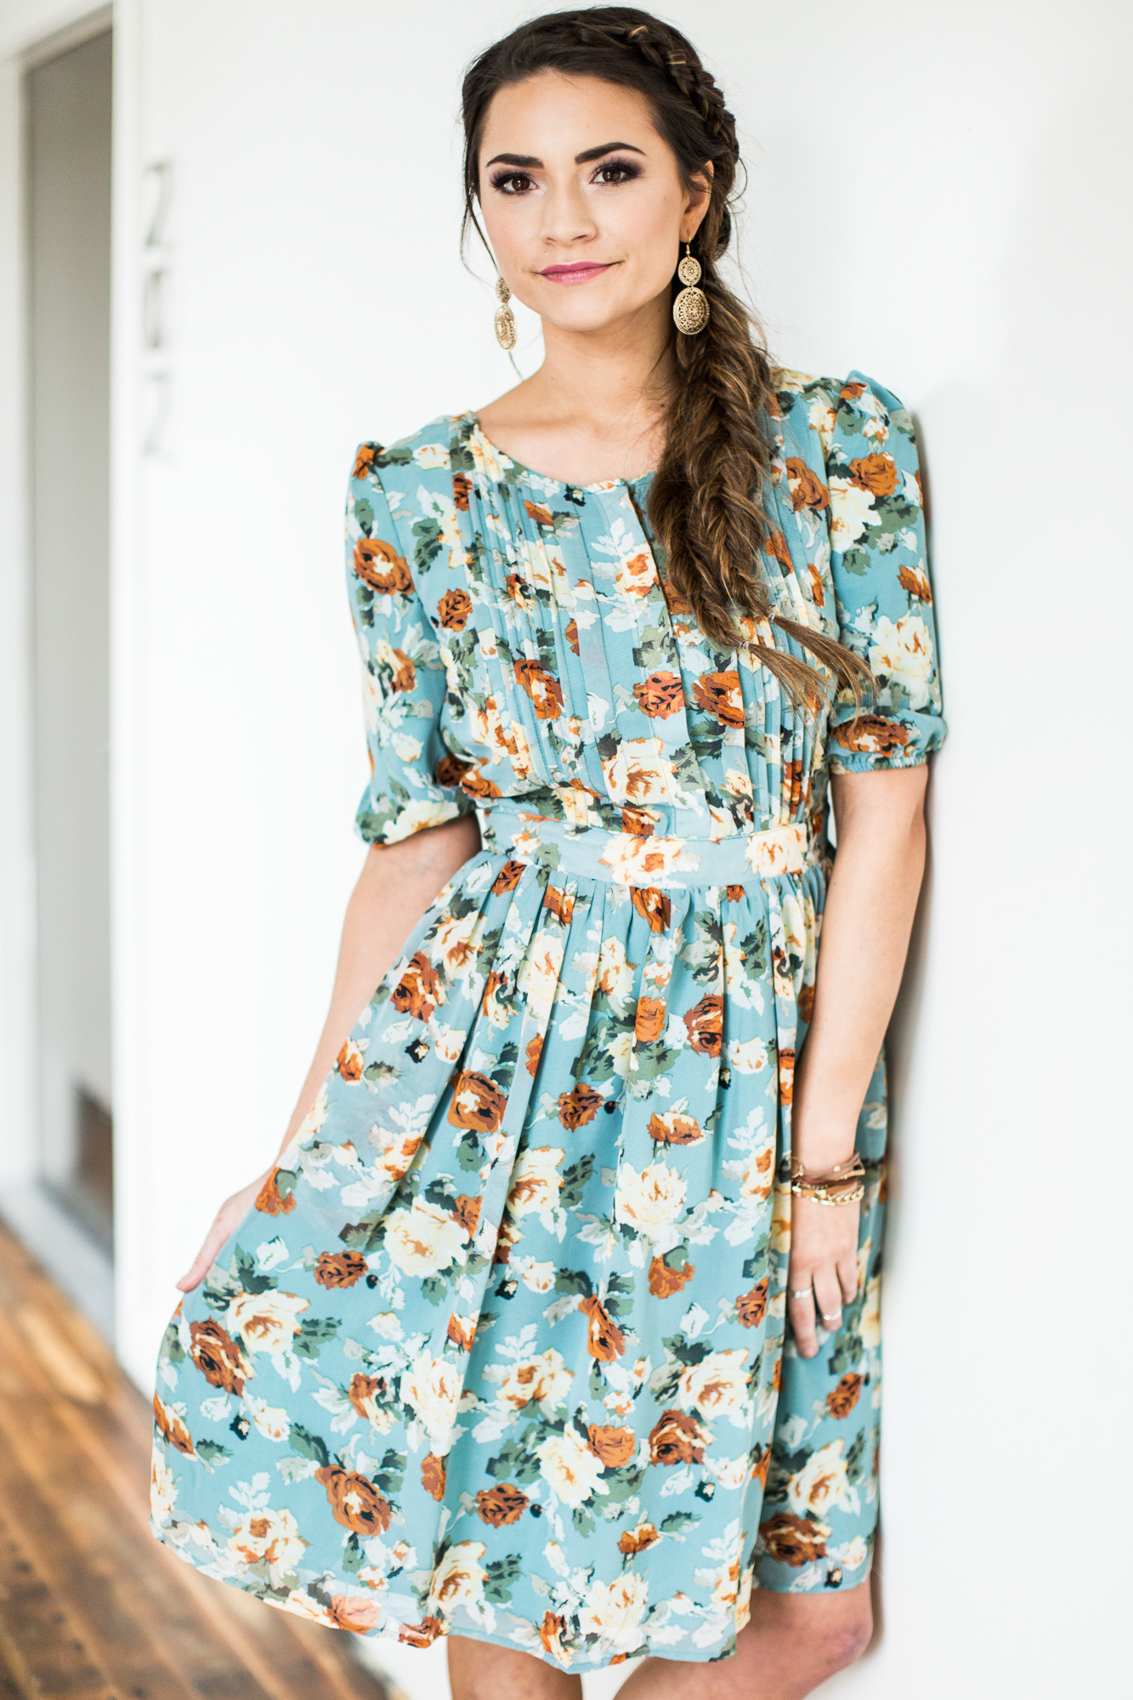 Modest Dresses for Church, LDS Modest Dresses, Modest Casual Dresses ...